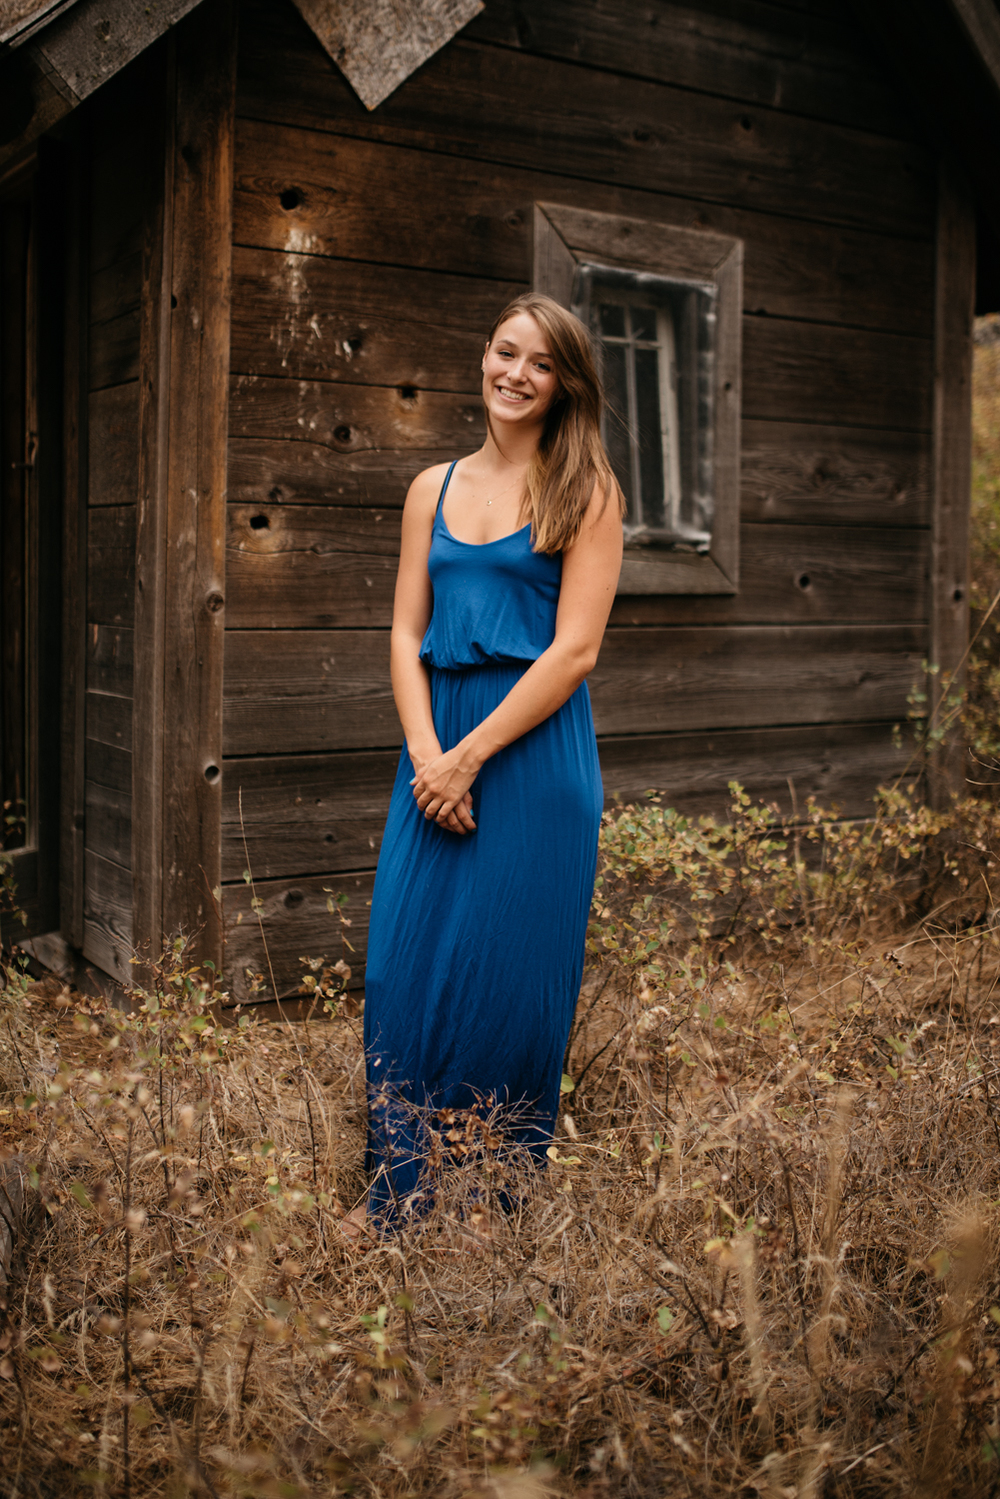 Spokane Washington Senior Picture Photography--6.jpg